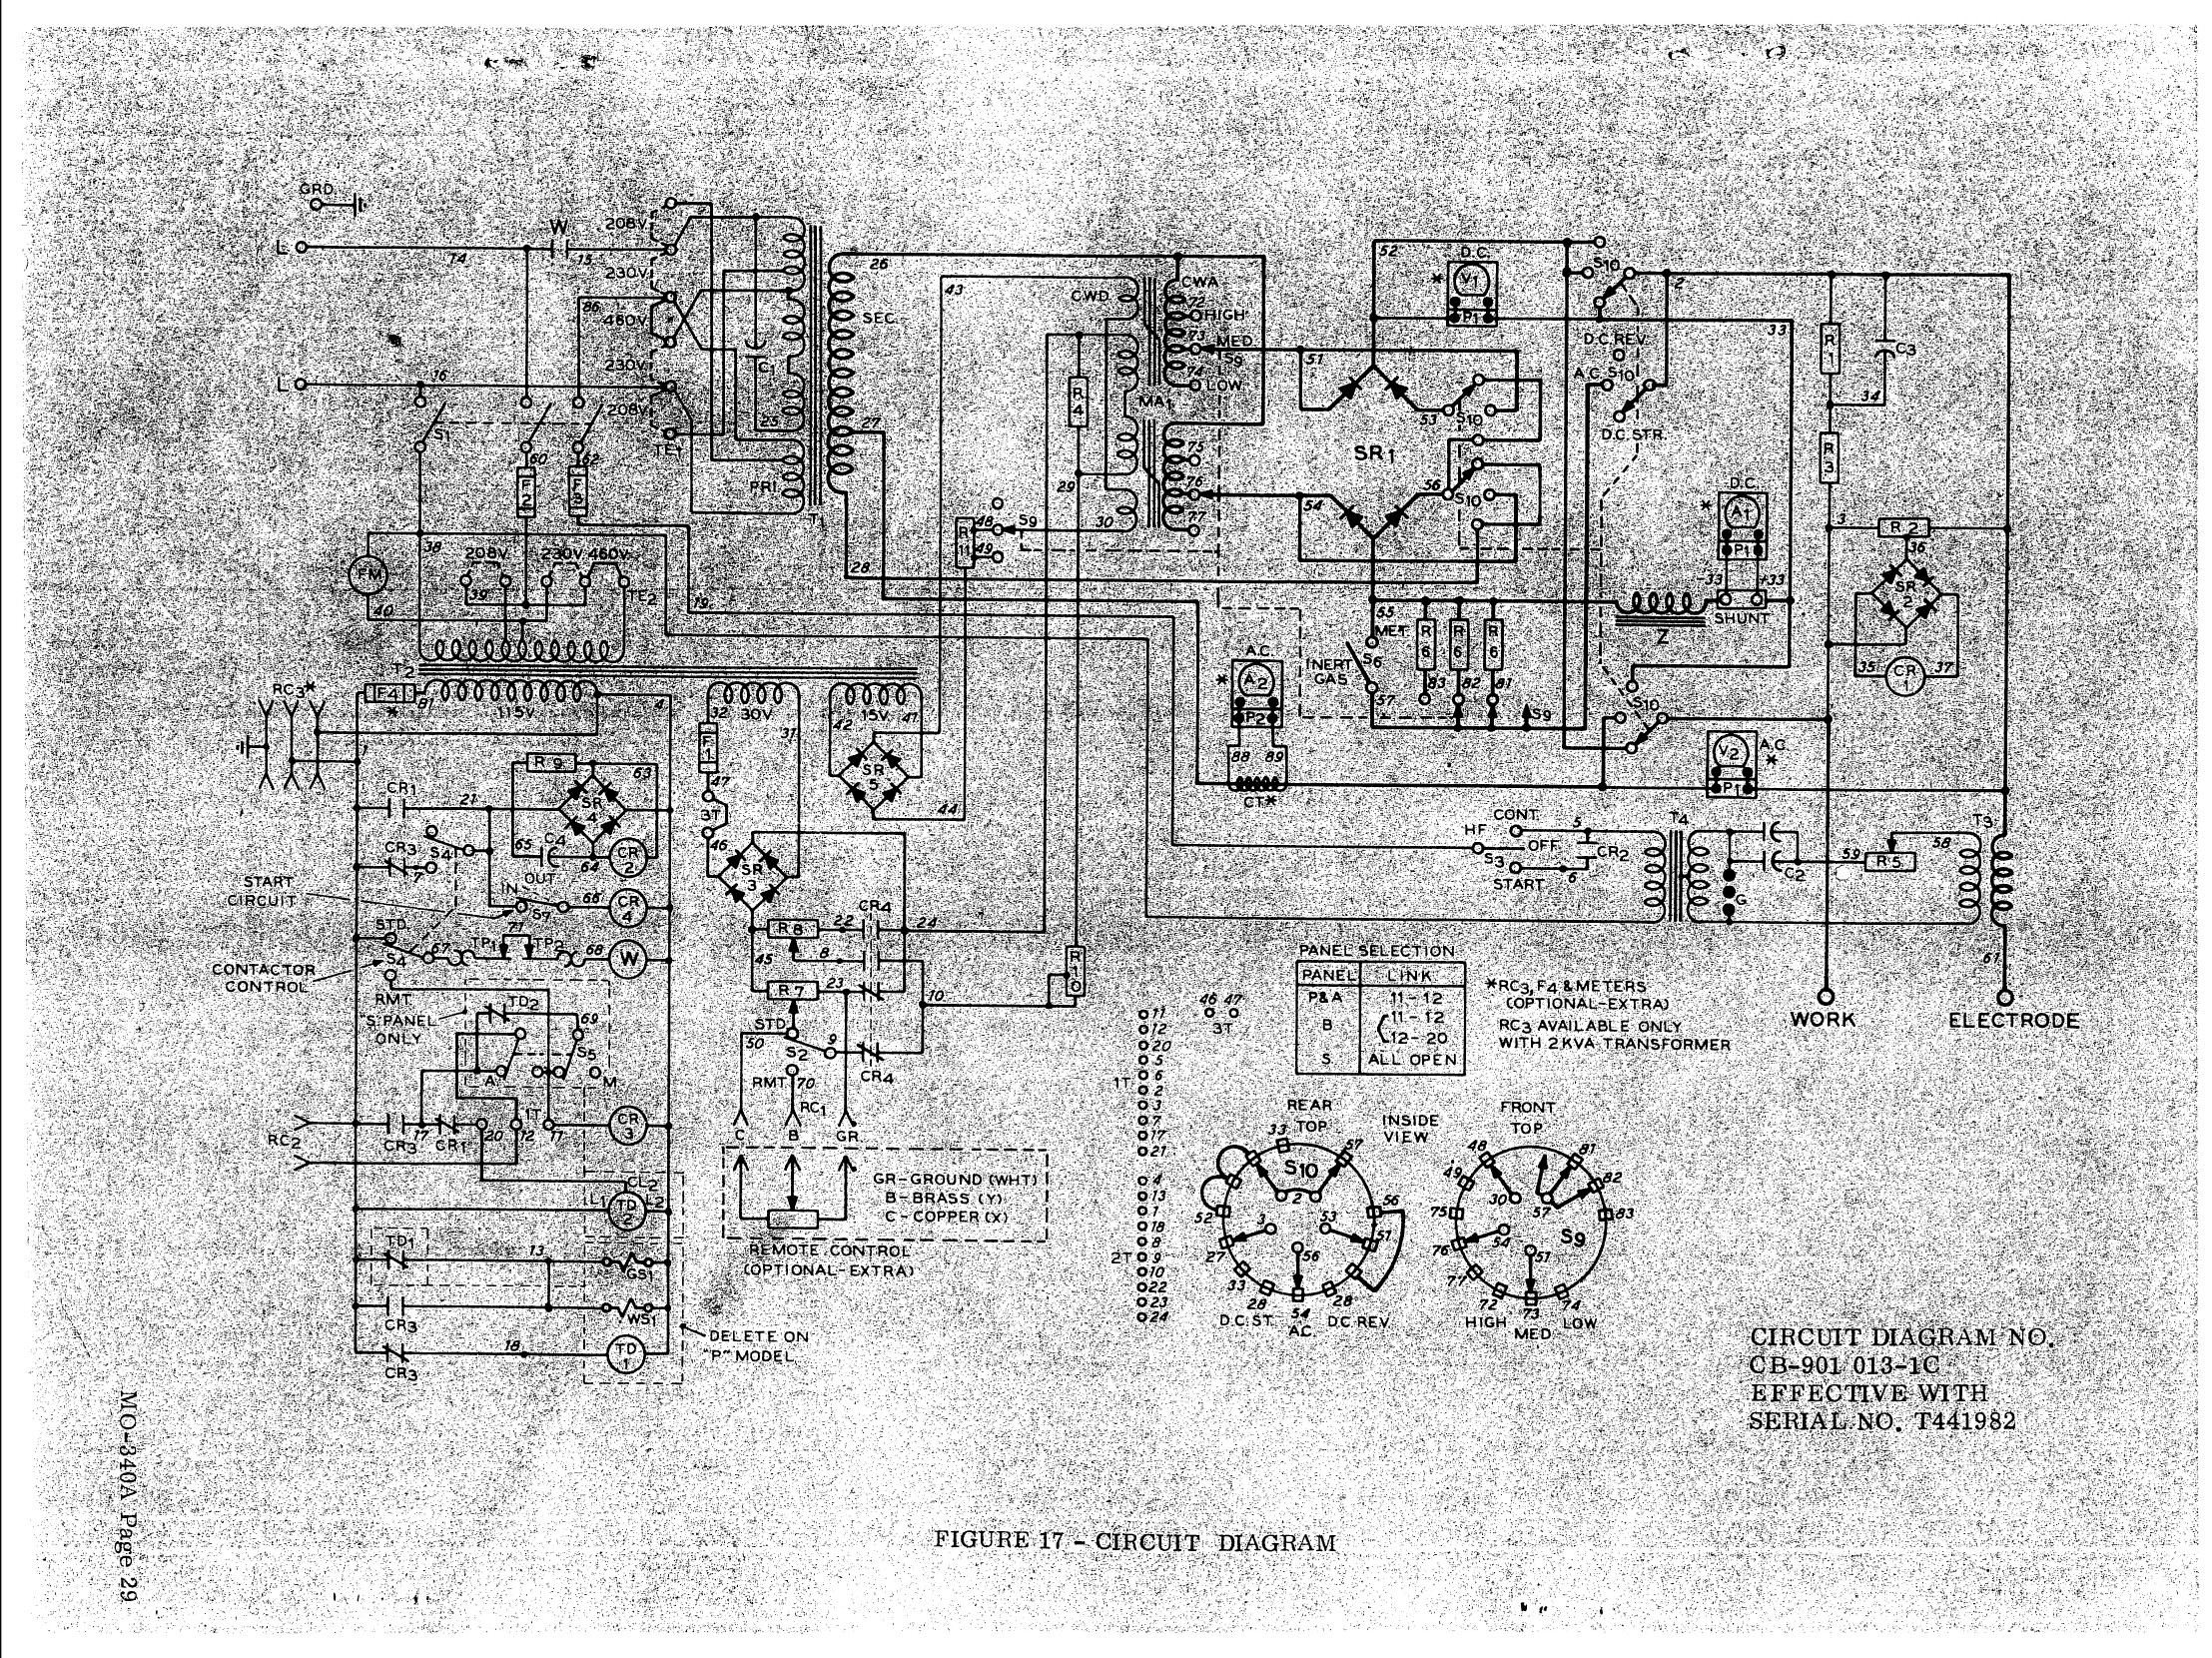 Ready Welder Schematic Enthusiast Wiring Diagrams Lincoln Engine Diagram Welding Welders Sa 200